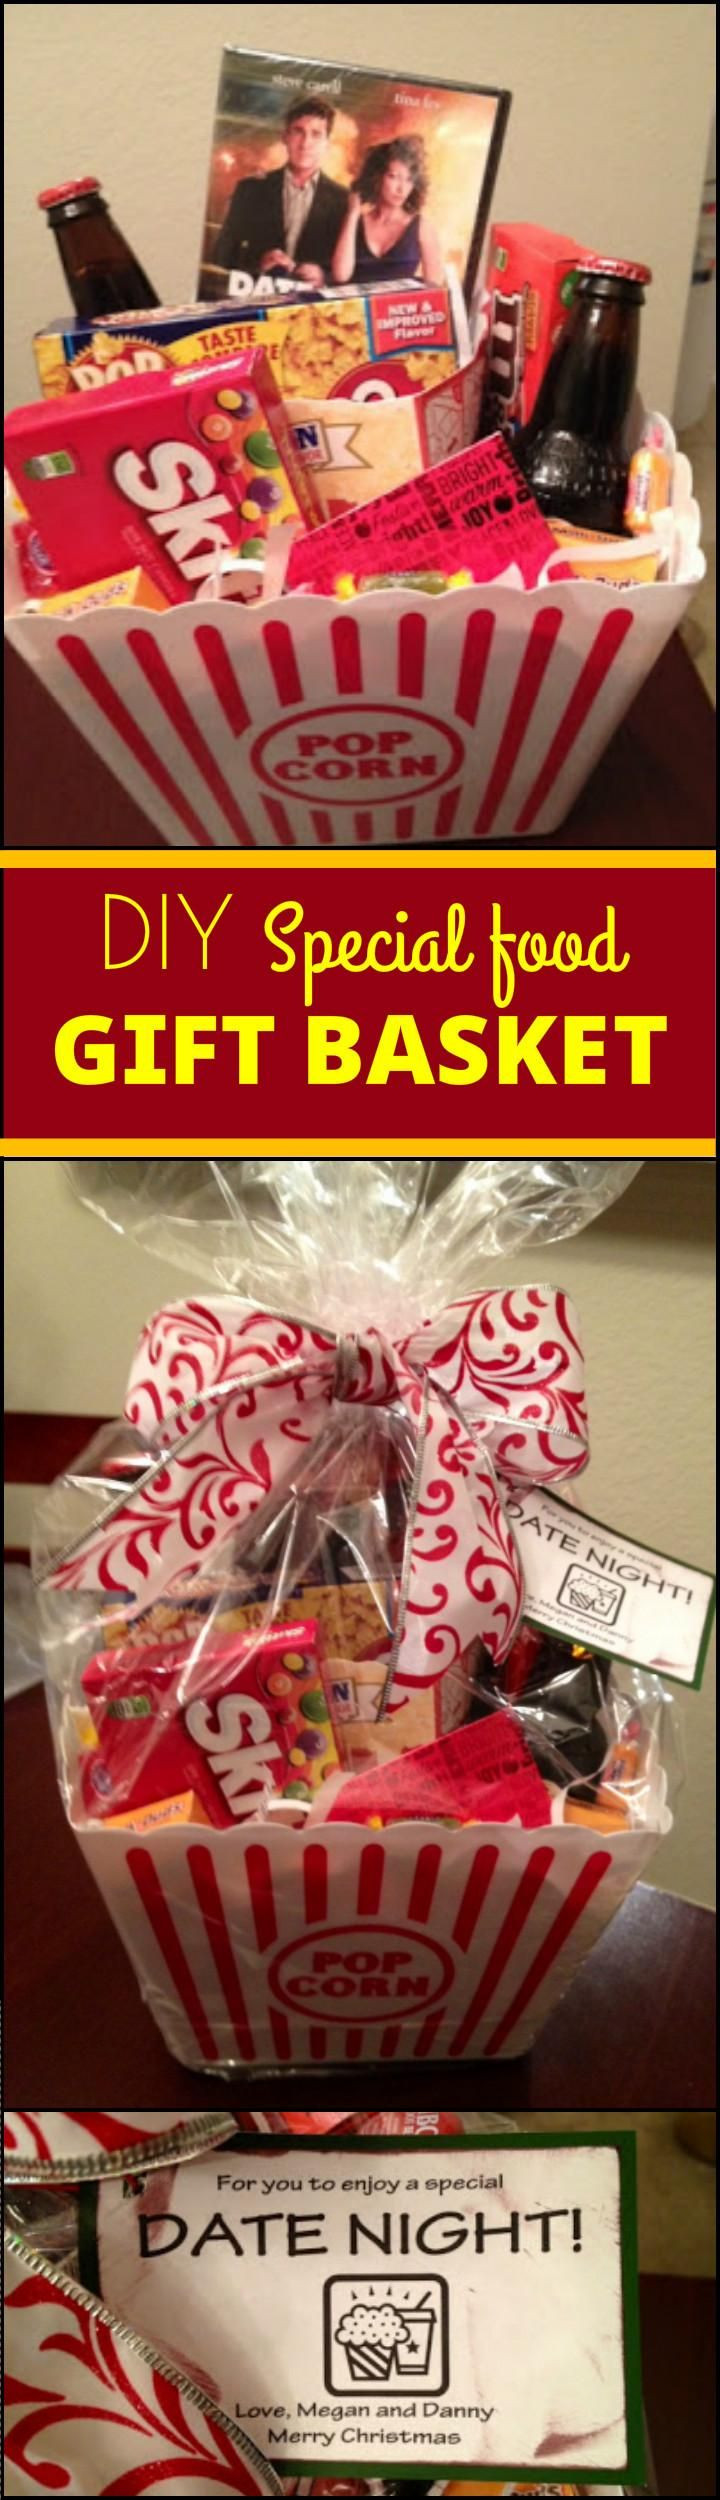 Best ideas about Inexpensive Gift Baskets Ideas . Save or Pin 25 unique Cheap t baskets ideas on Pinterest Now.